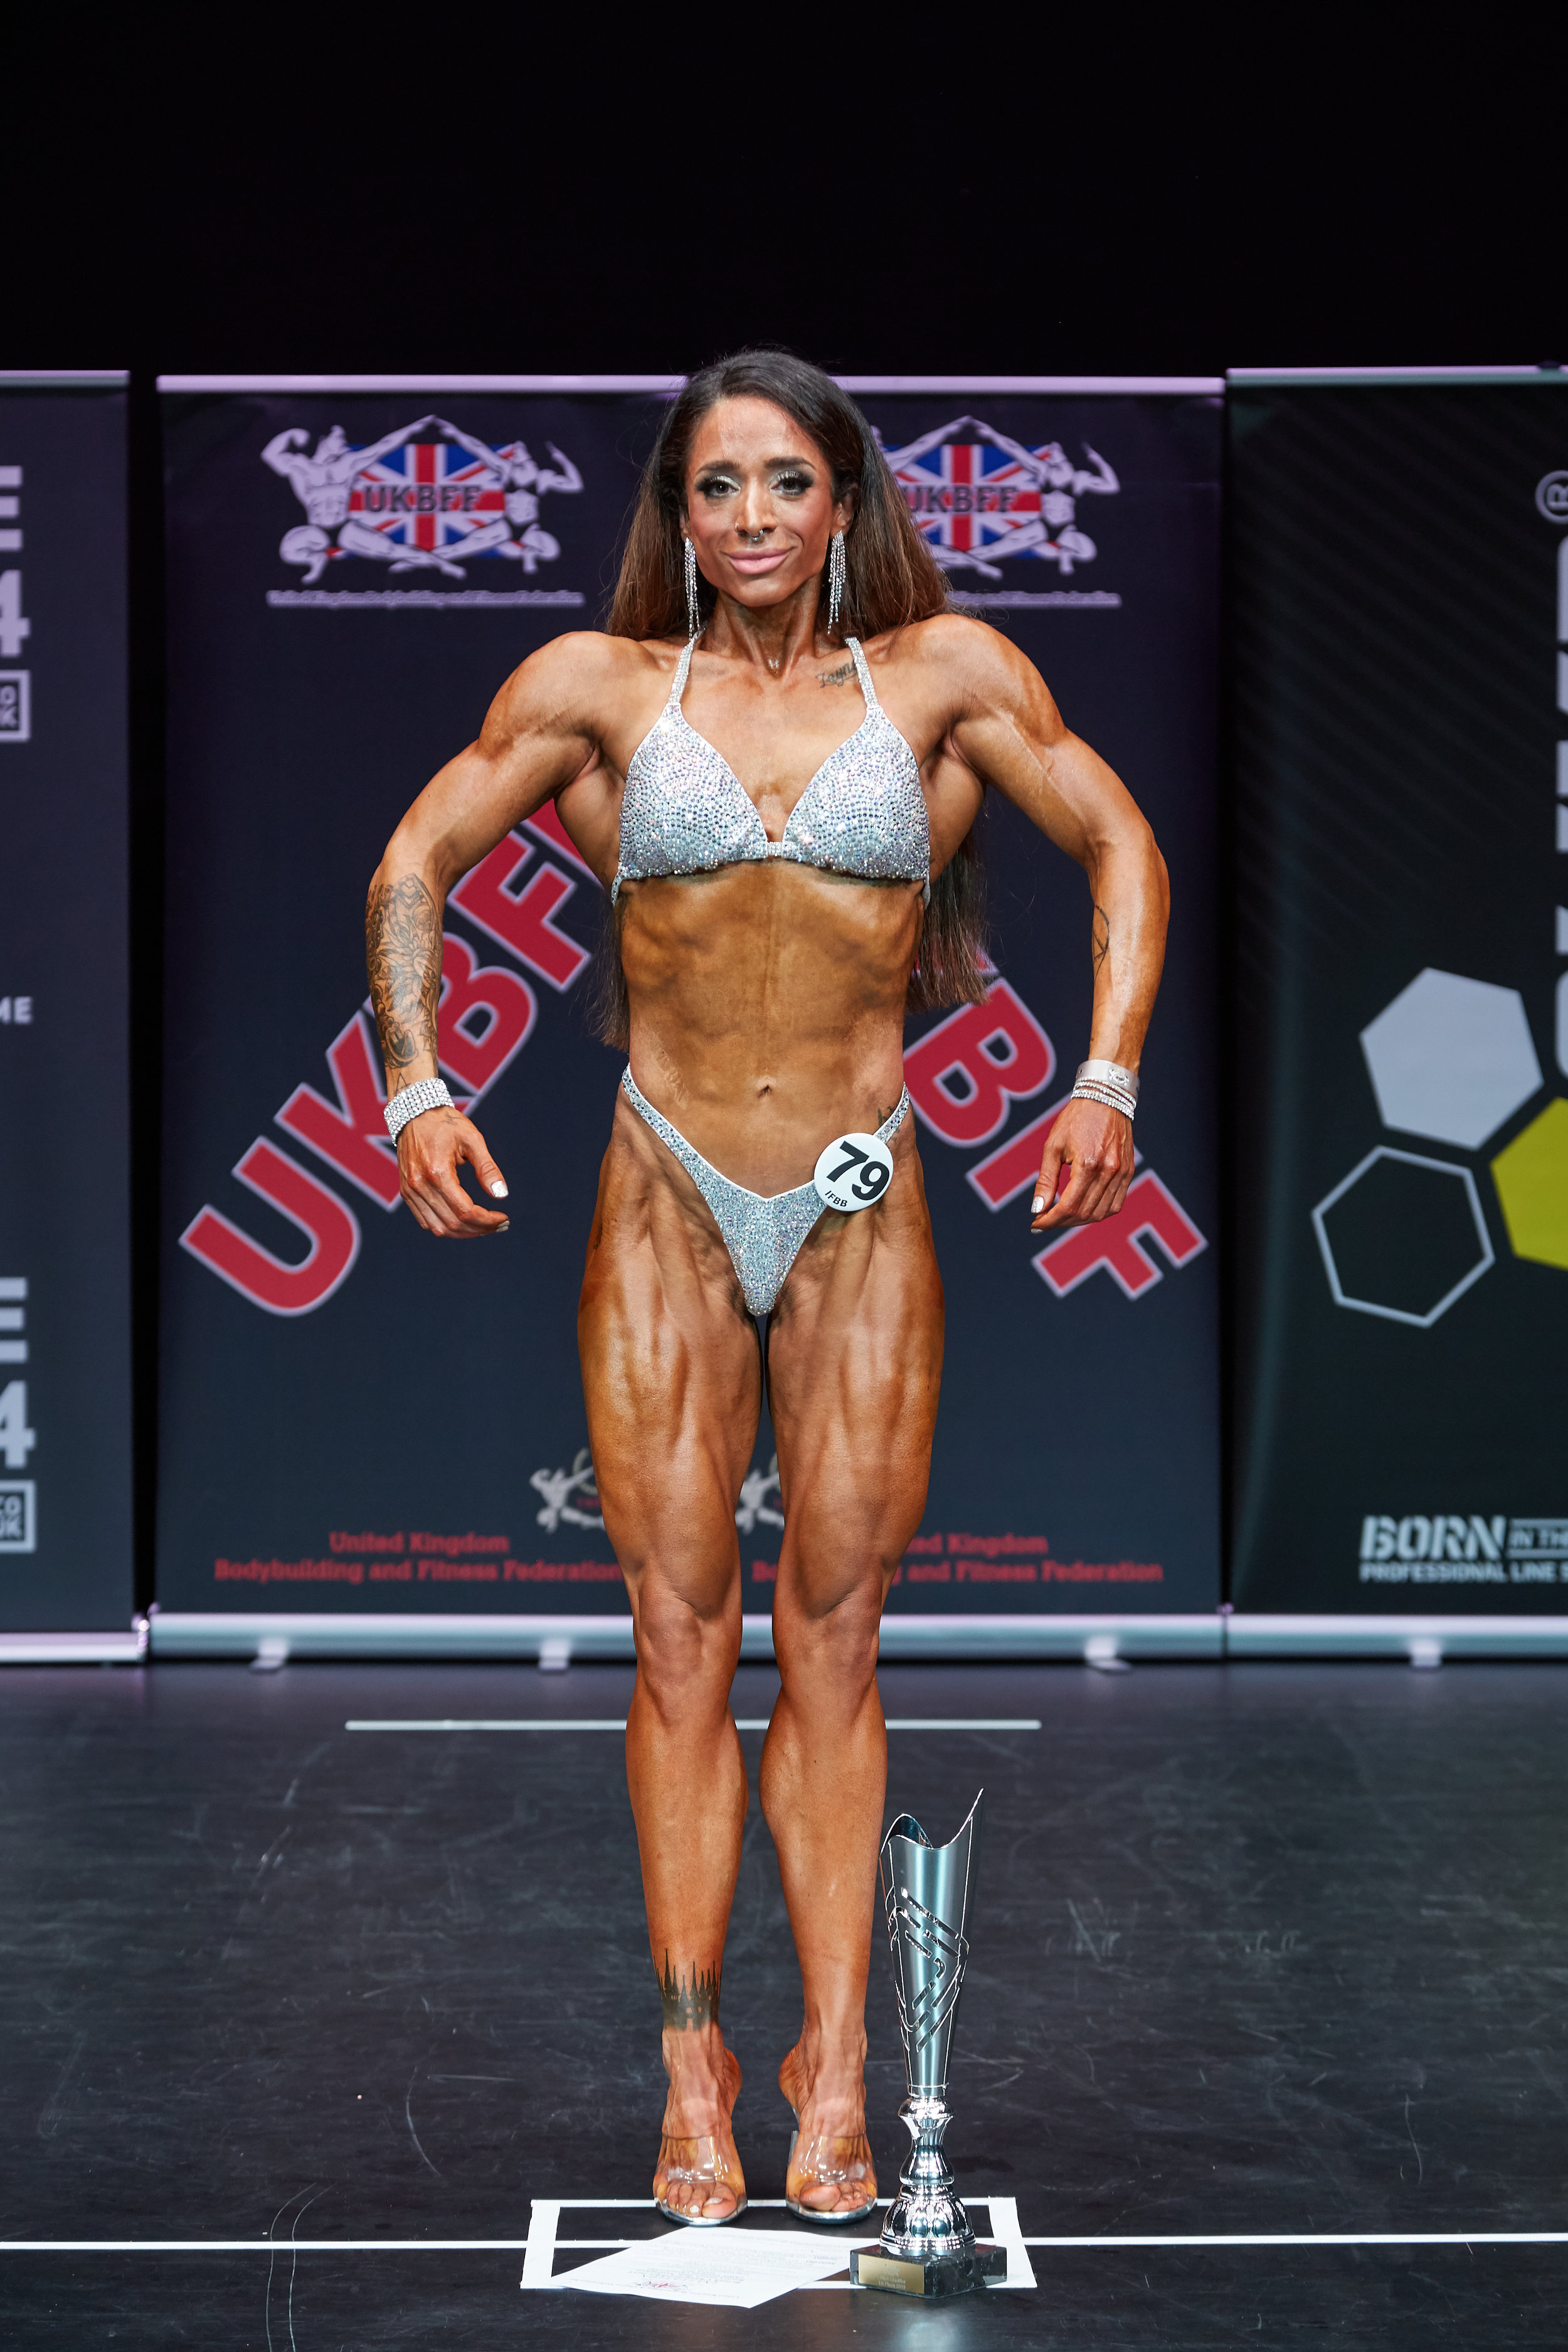 Bodyfitness champion Sasha Zadeh.